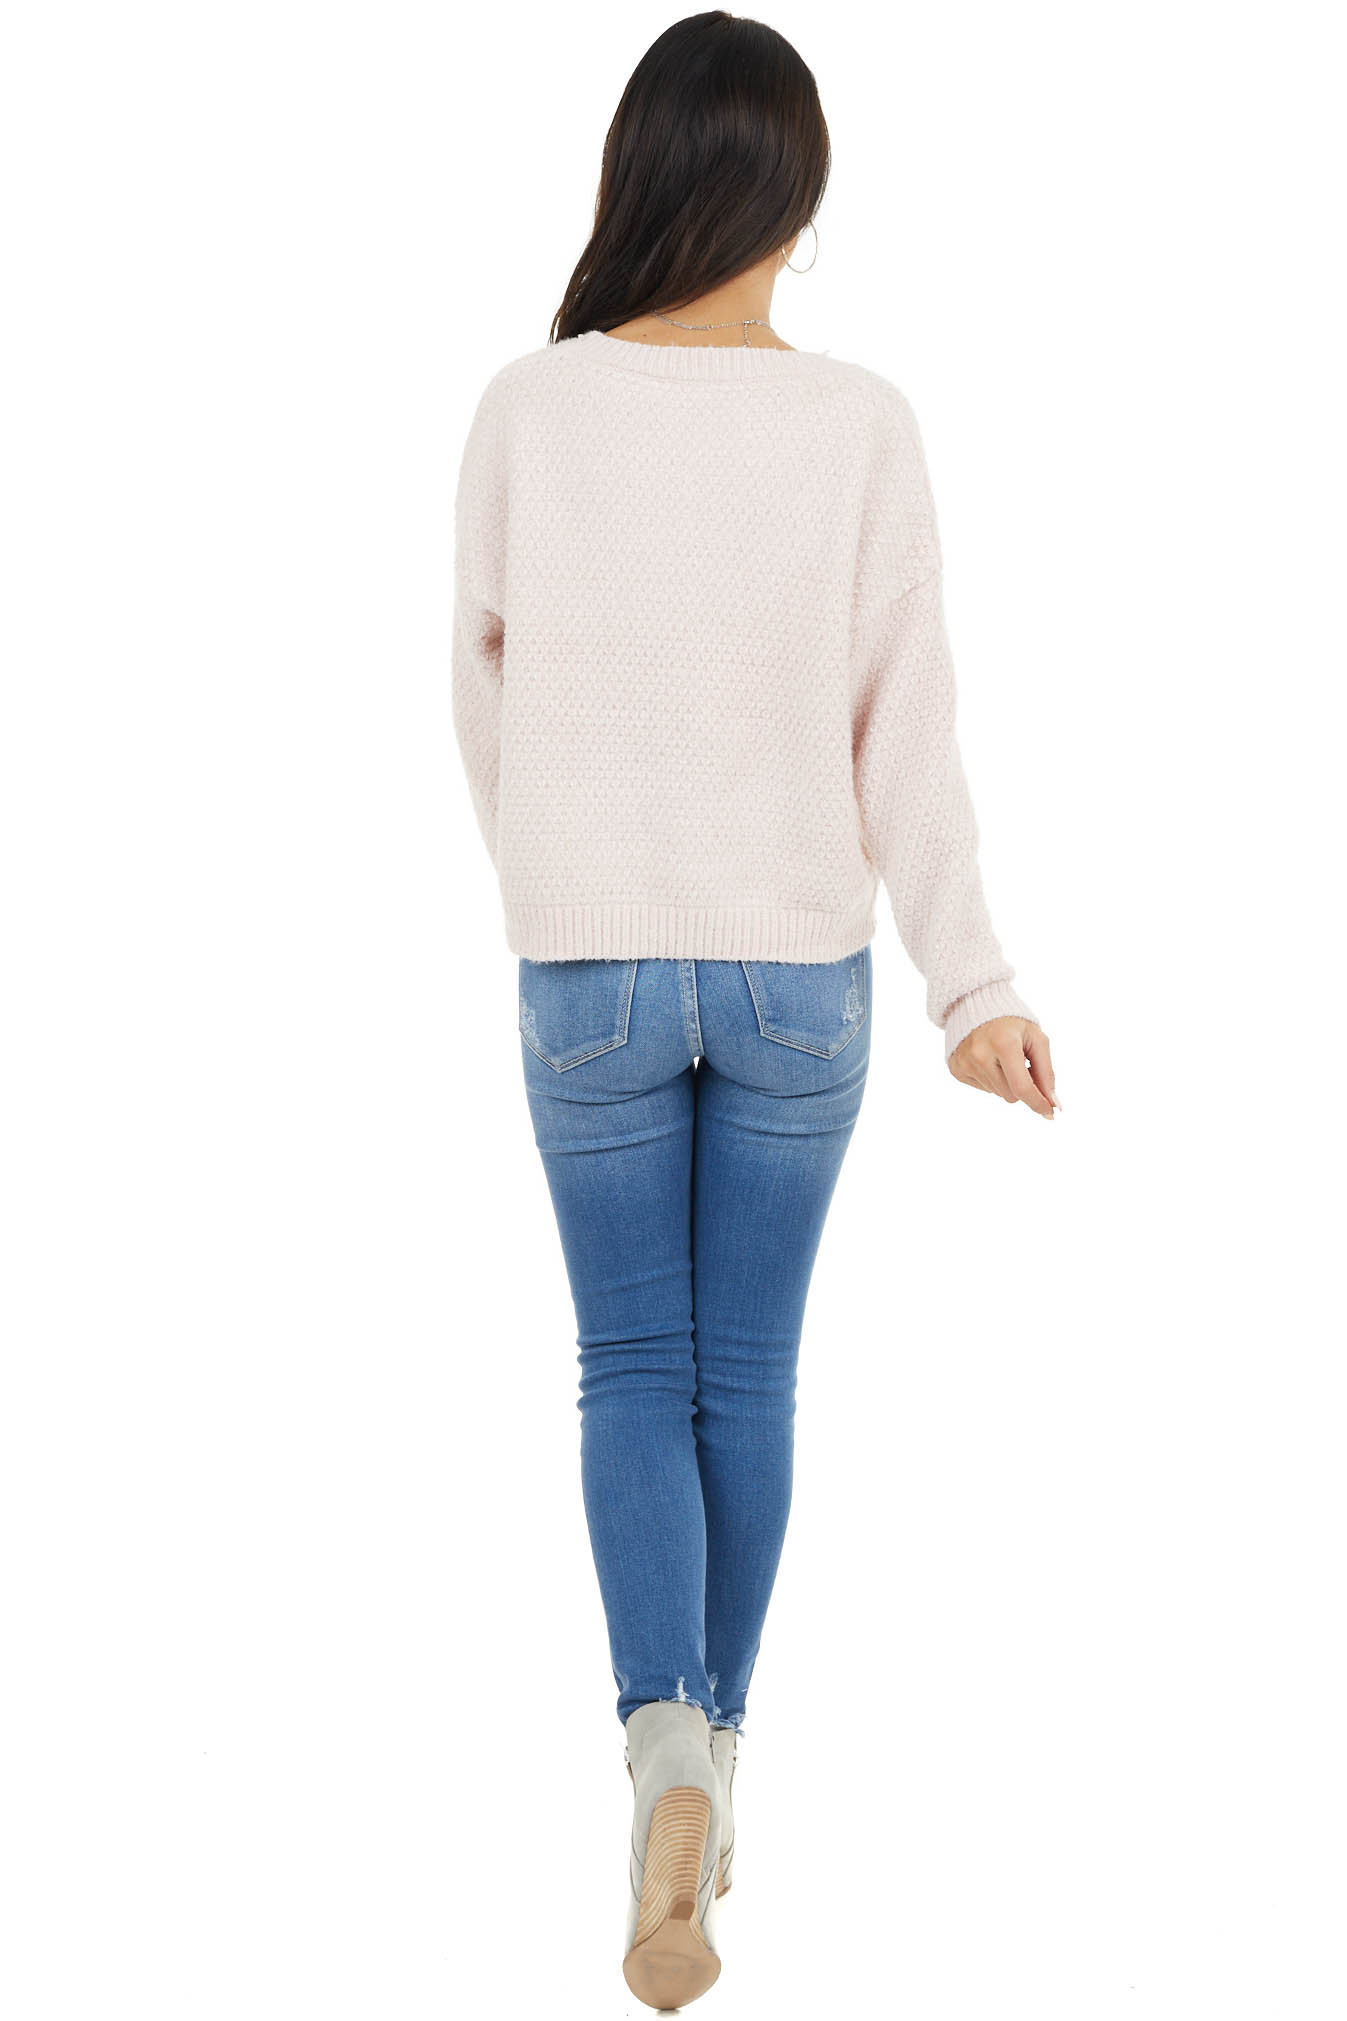 Blush Two Tone Knit Slightly Cropped Sweater with V Neck